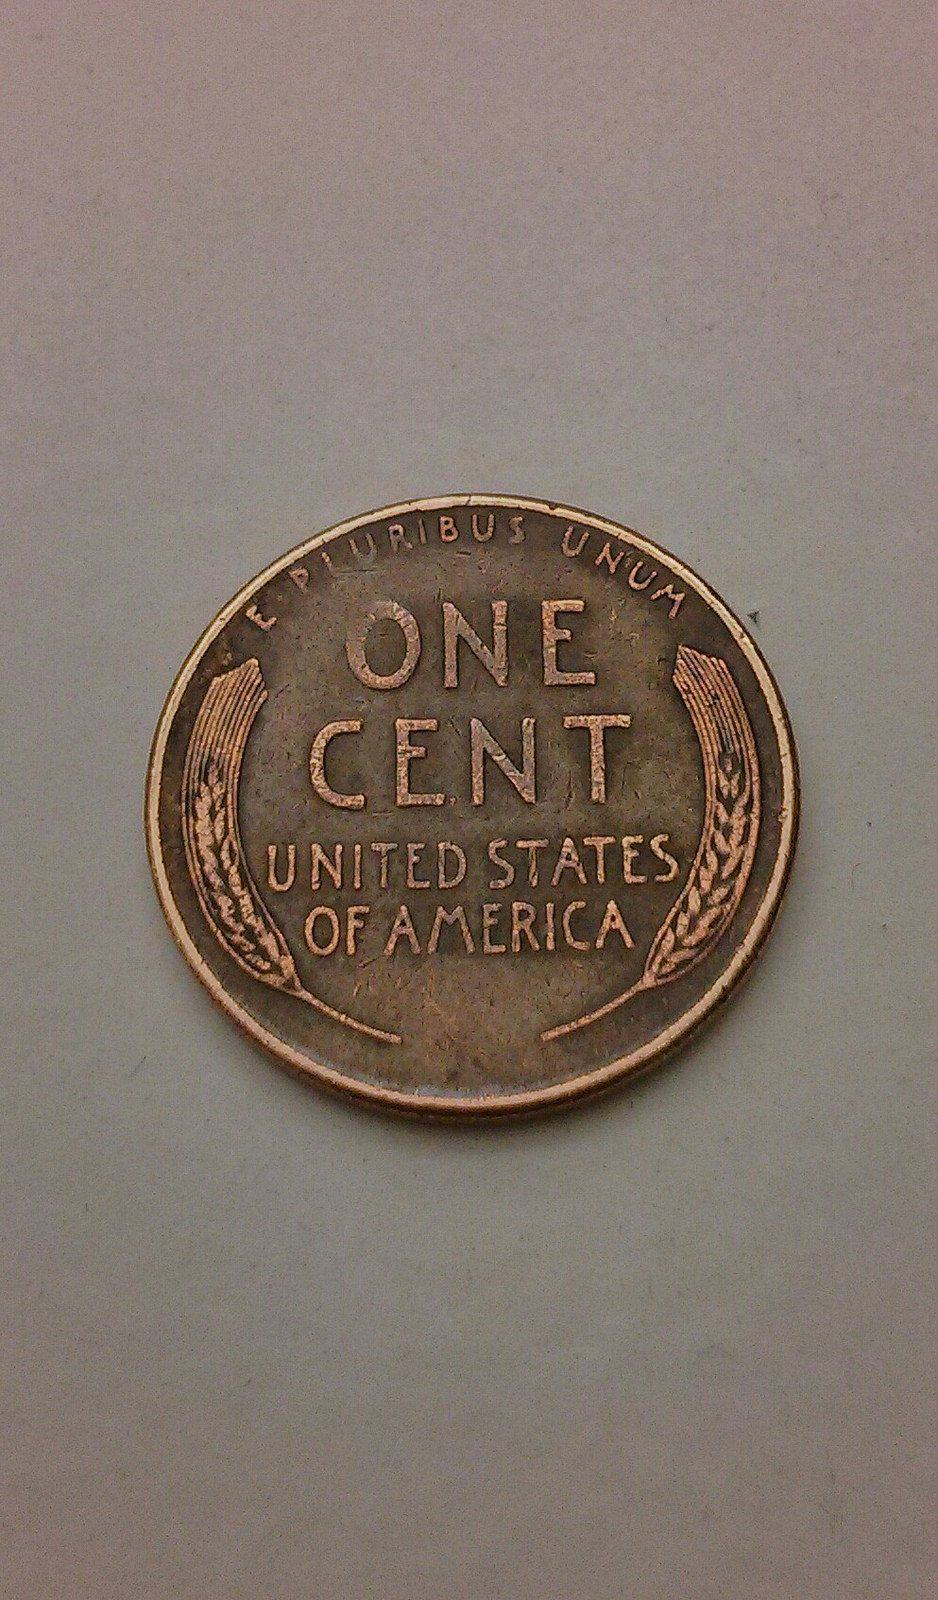 1958 Wheat Penny: One of the Rarest Penny Errors Valued at $200,000